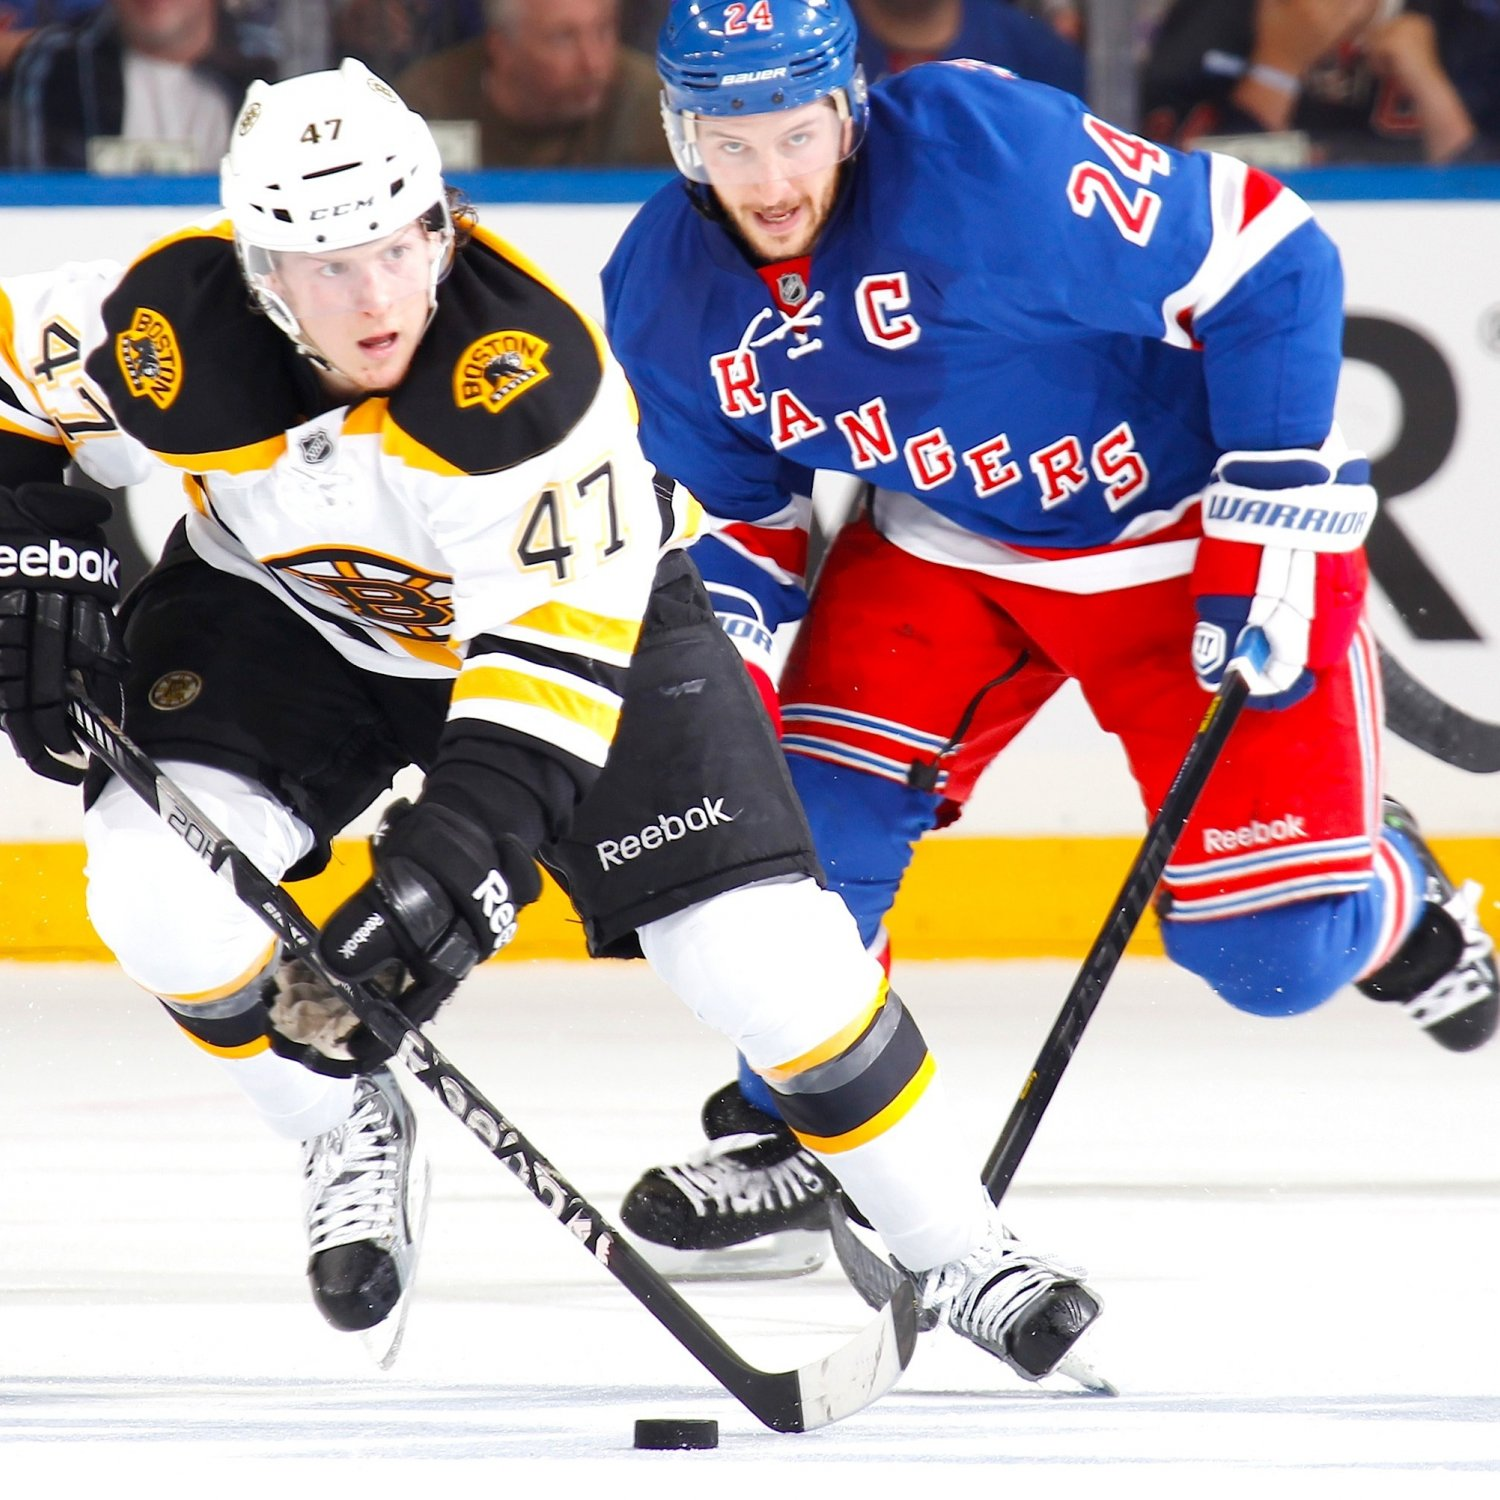 Bruins Vs. Rangers Game 3: Score, Twitter Reaction And